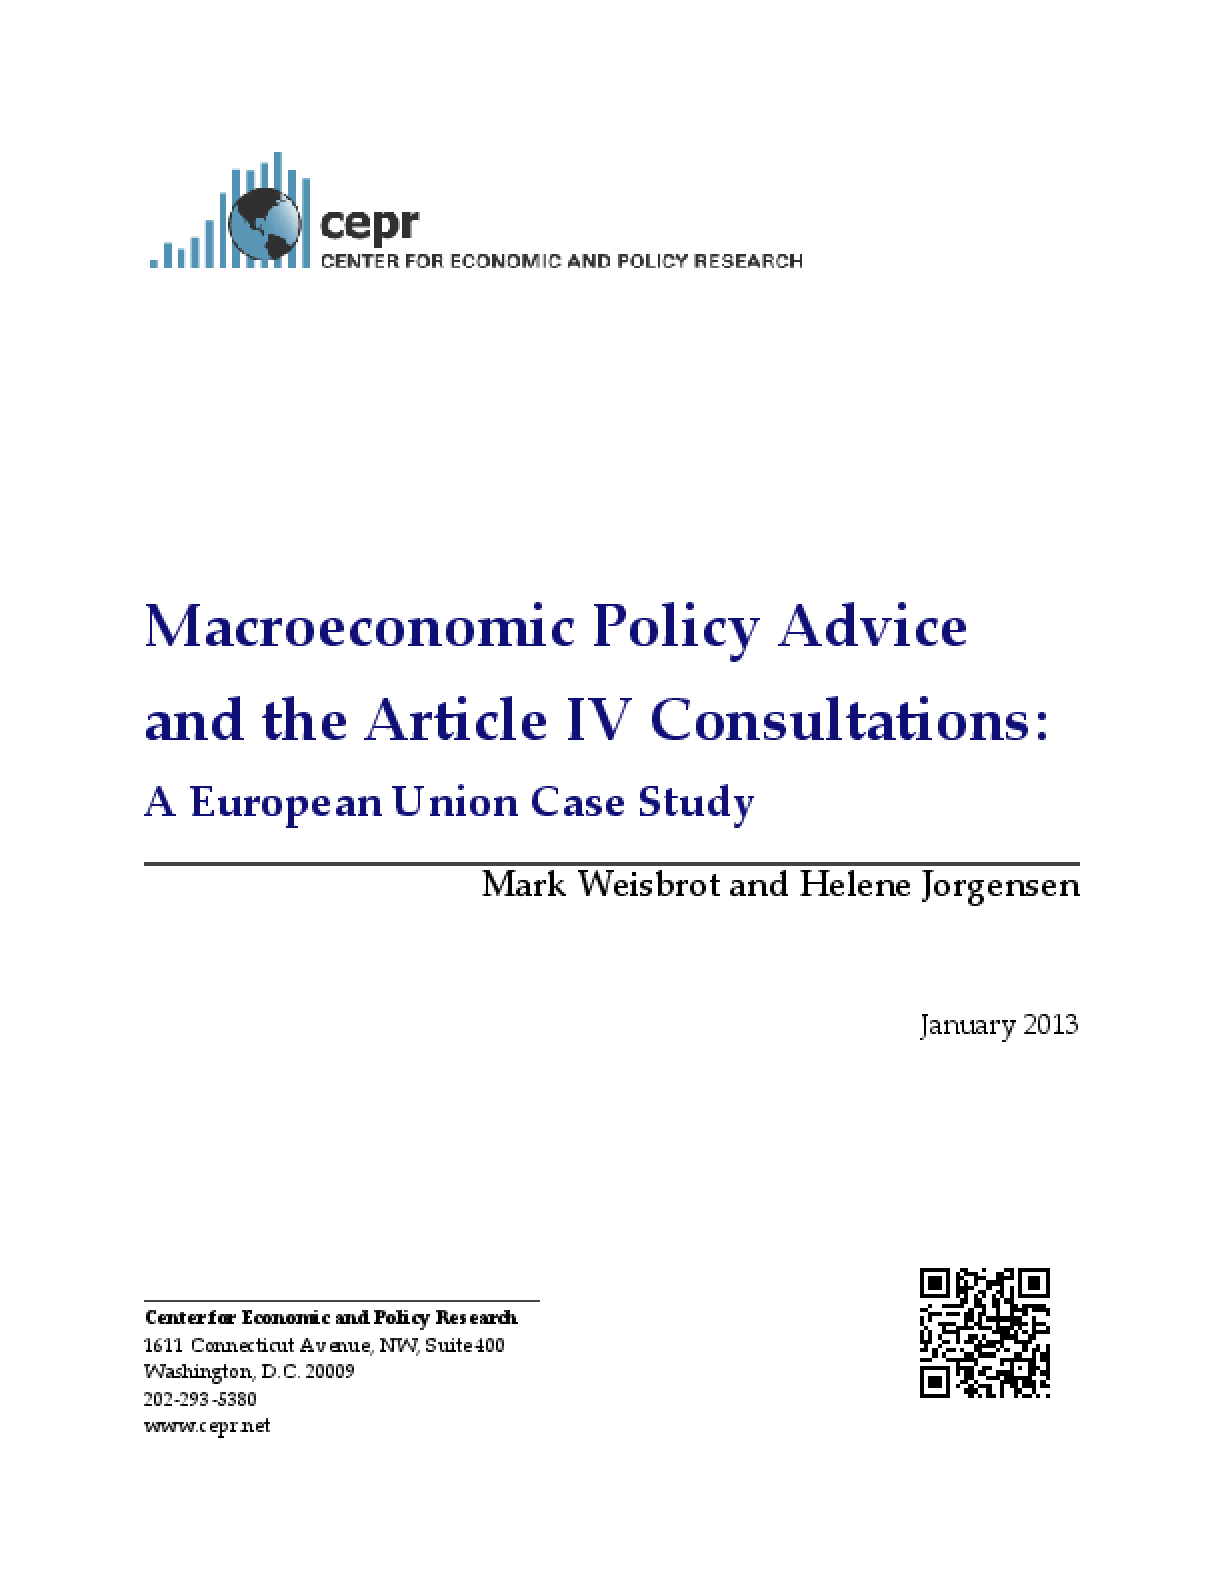 Macroeconomic Policy Advice and the Article IV Consultations: A European Union Case Study